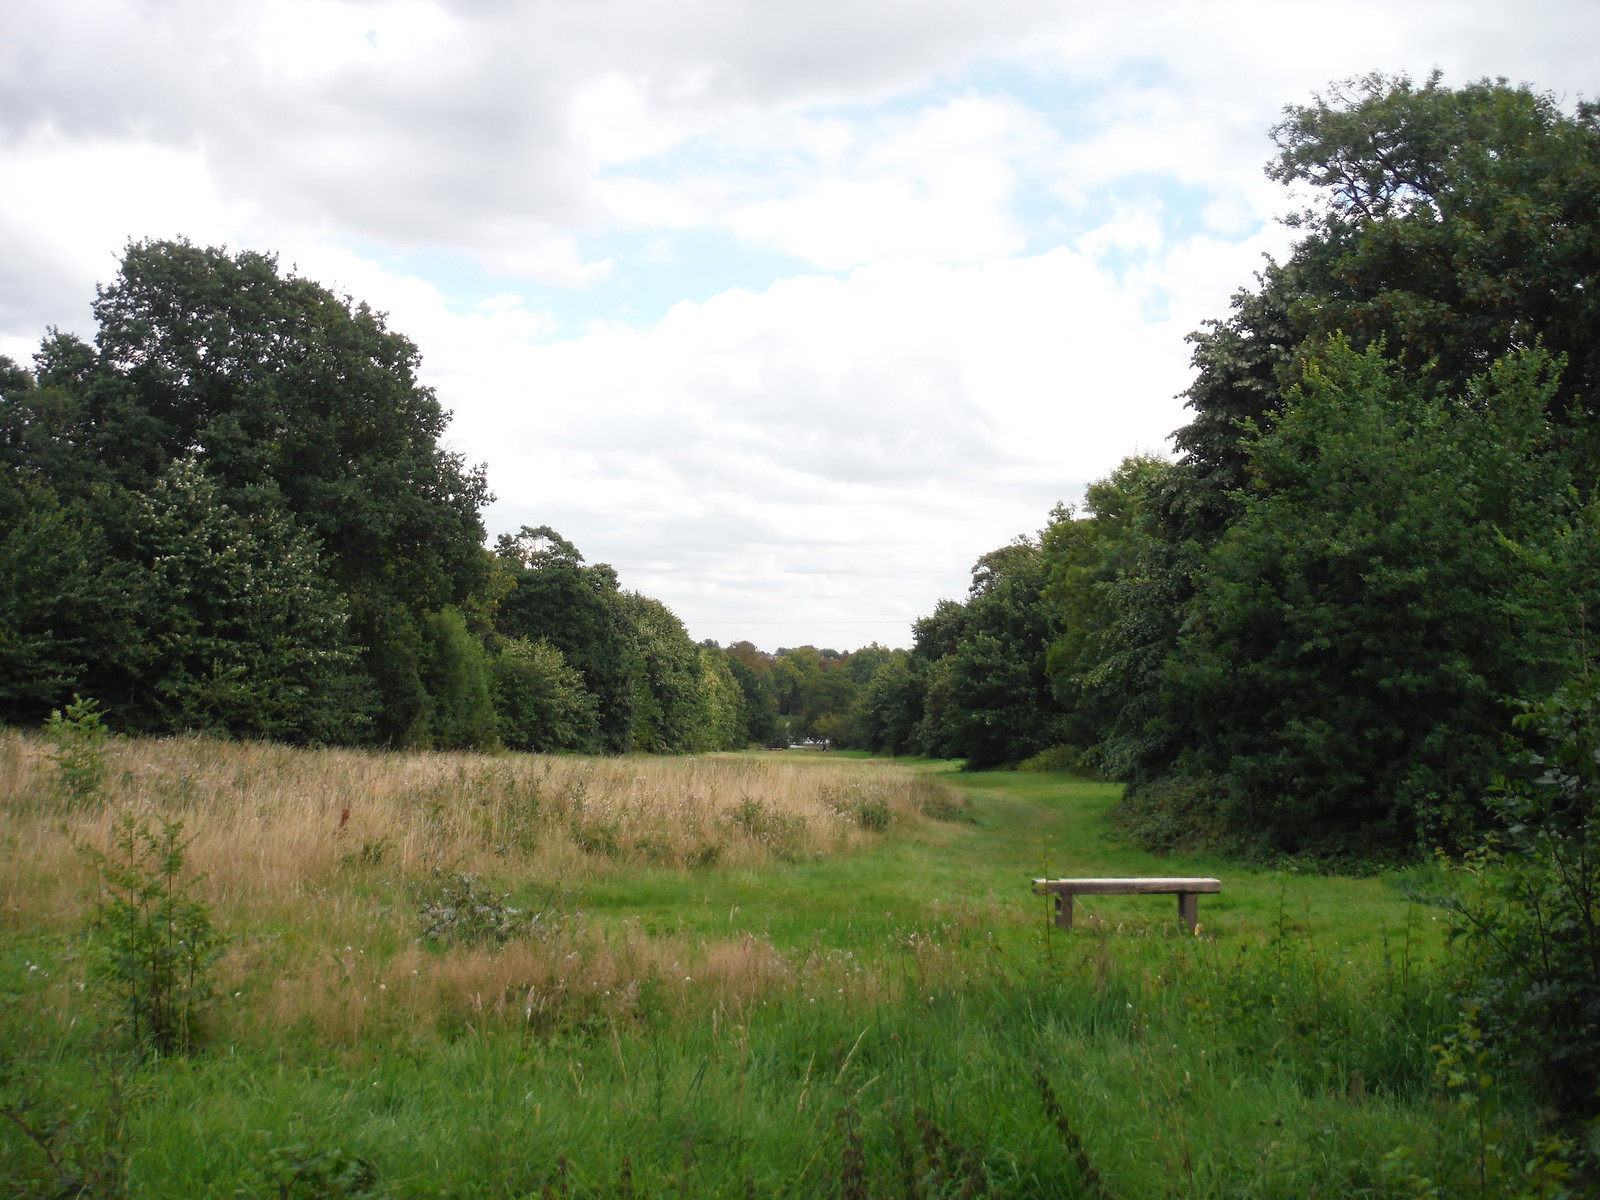 Bench with Long Vista towards Ornamental Pond SWC Walk Short 11 - Wanstead Park